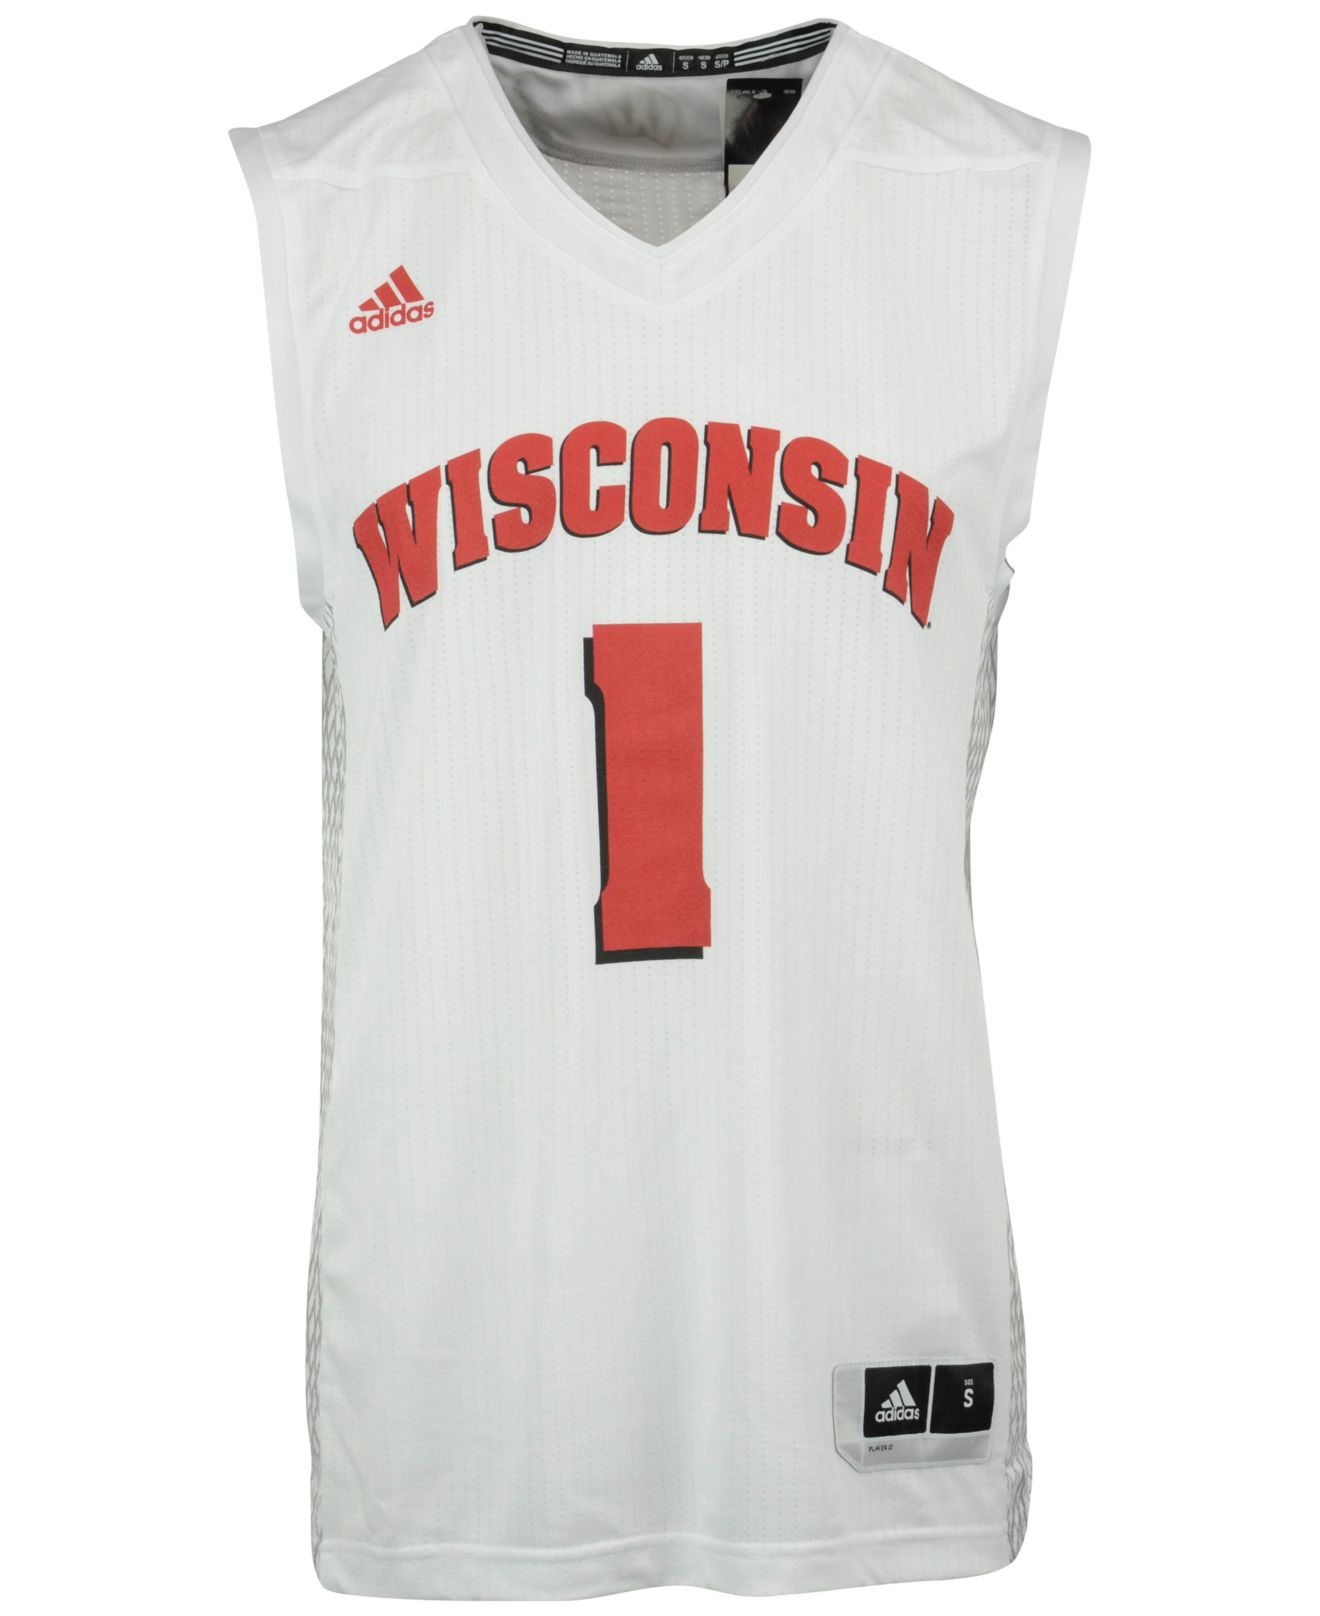 b201081a3 Lyst - adidas Originals Men s Wisconsin Badgers Iced Out Replica ...